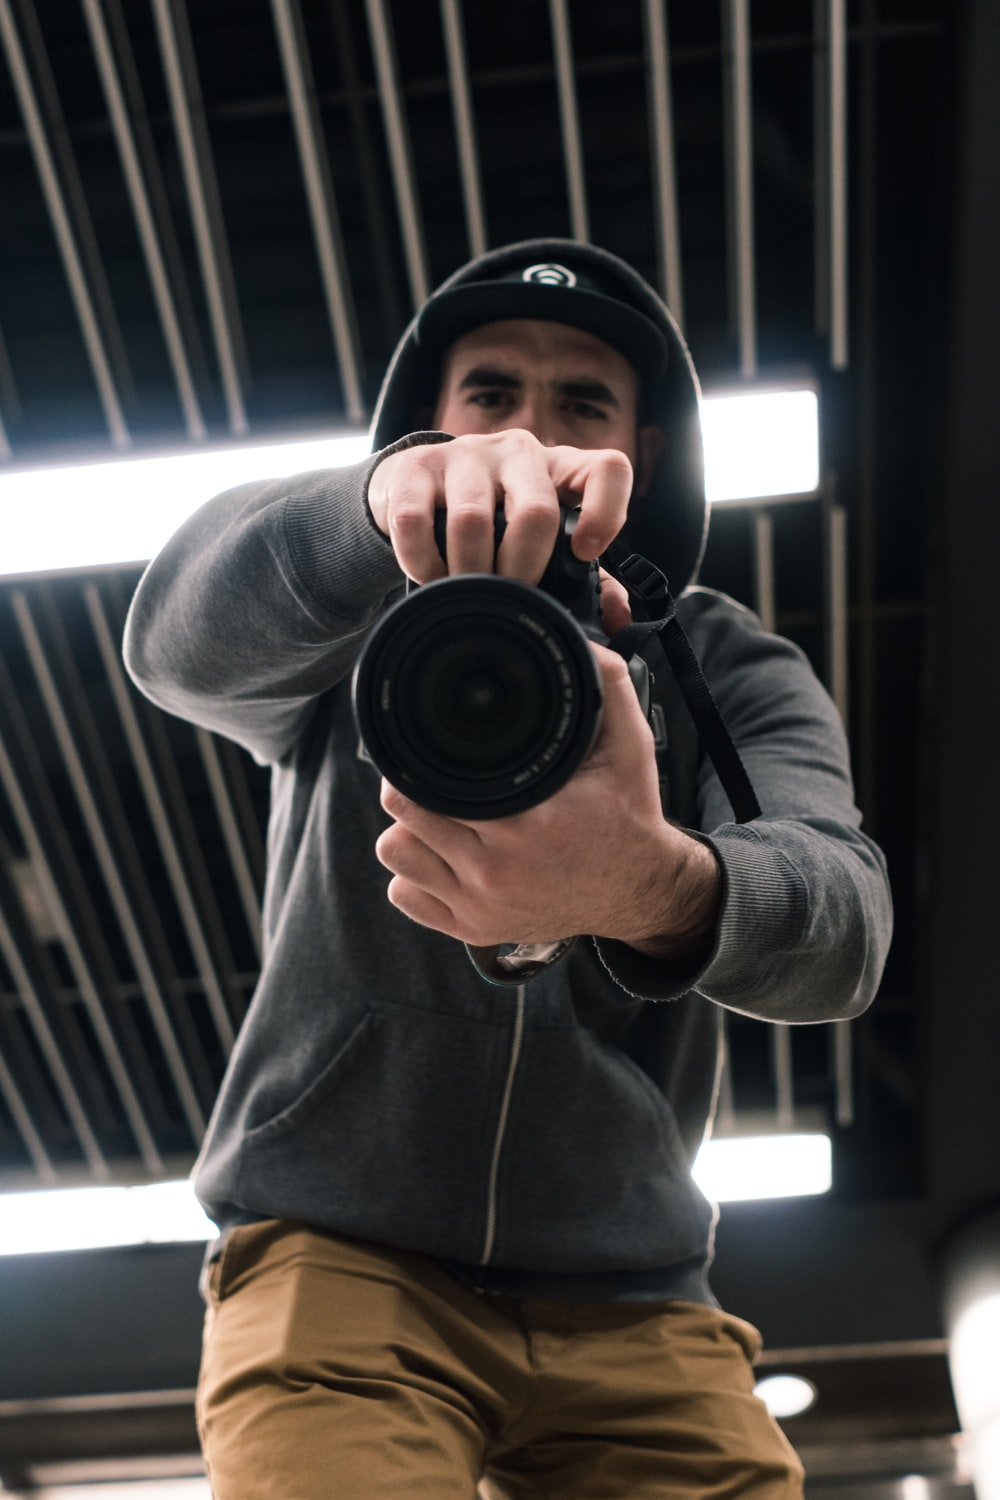 low angle-view of man holding DSLR camera